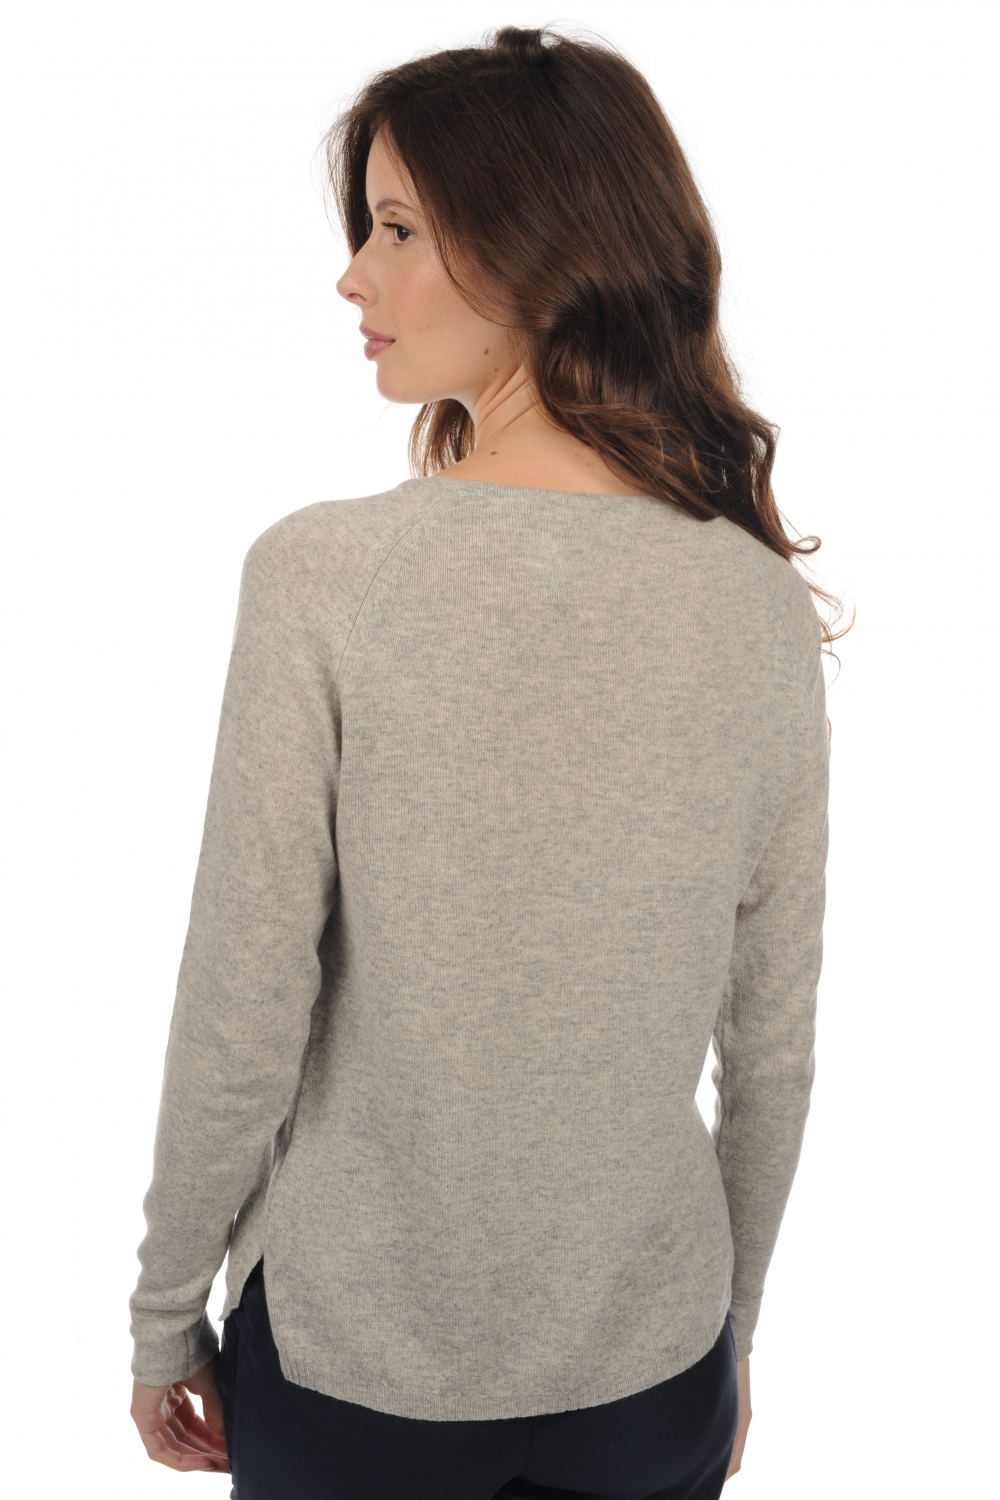 Cashmere ladies round necks myrcella flanelle chine s